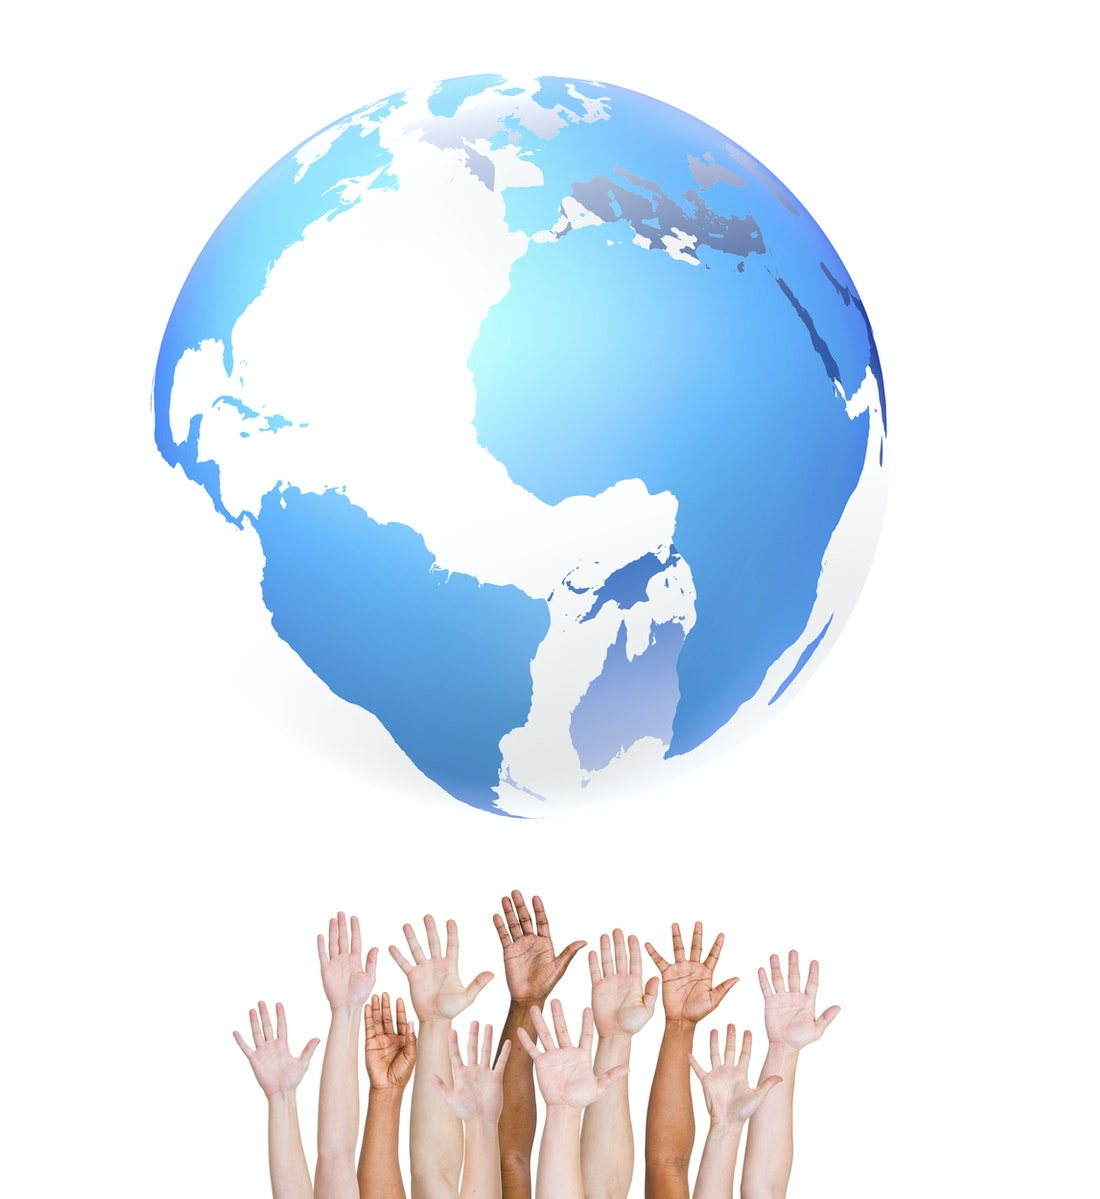 Group of ethnically diverse hands holding up the globe